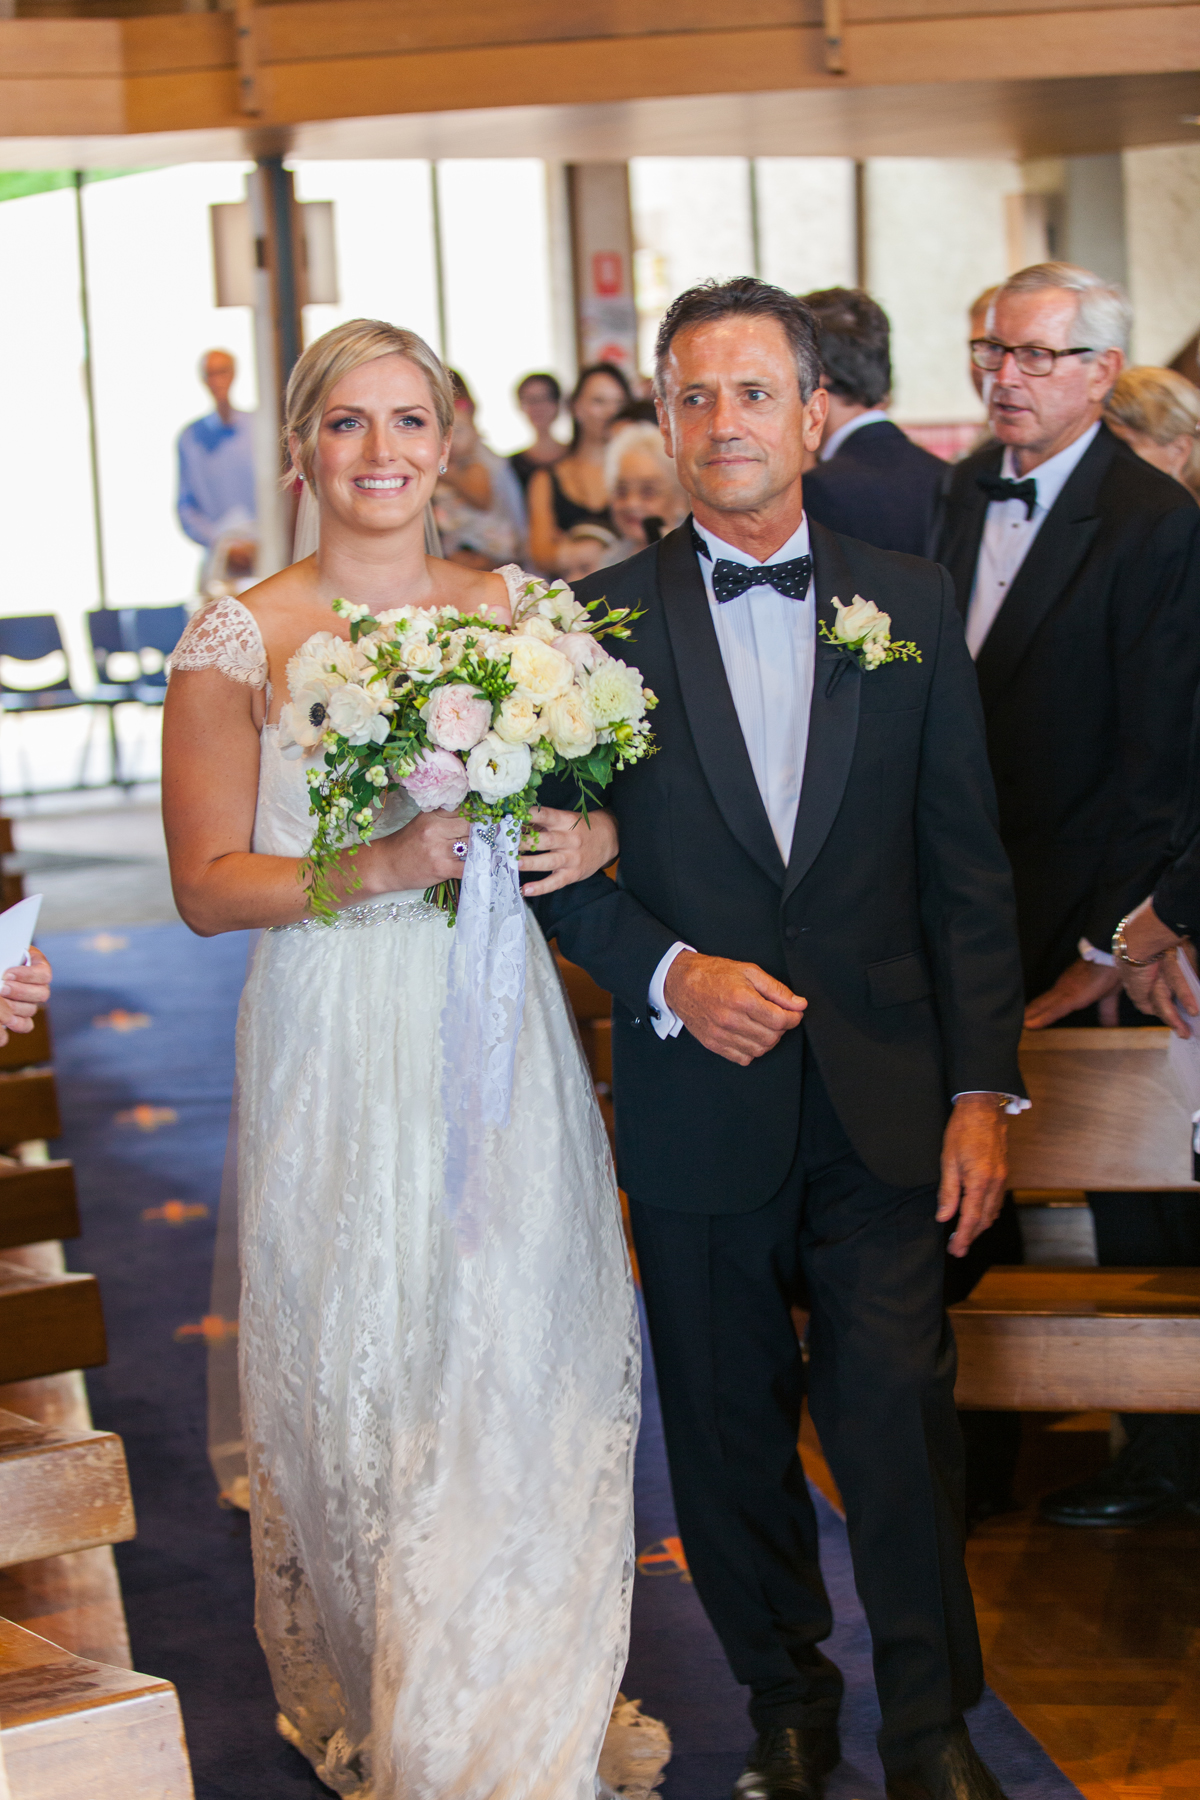 LAUREN&CHARLES_WEDDING-97.jpg